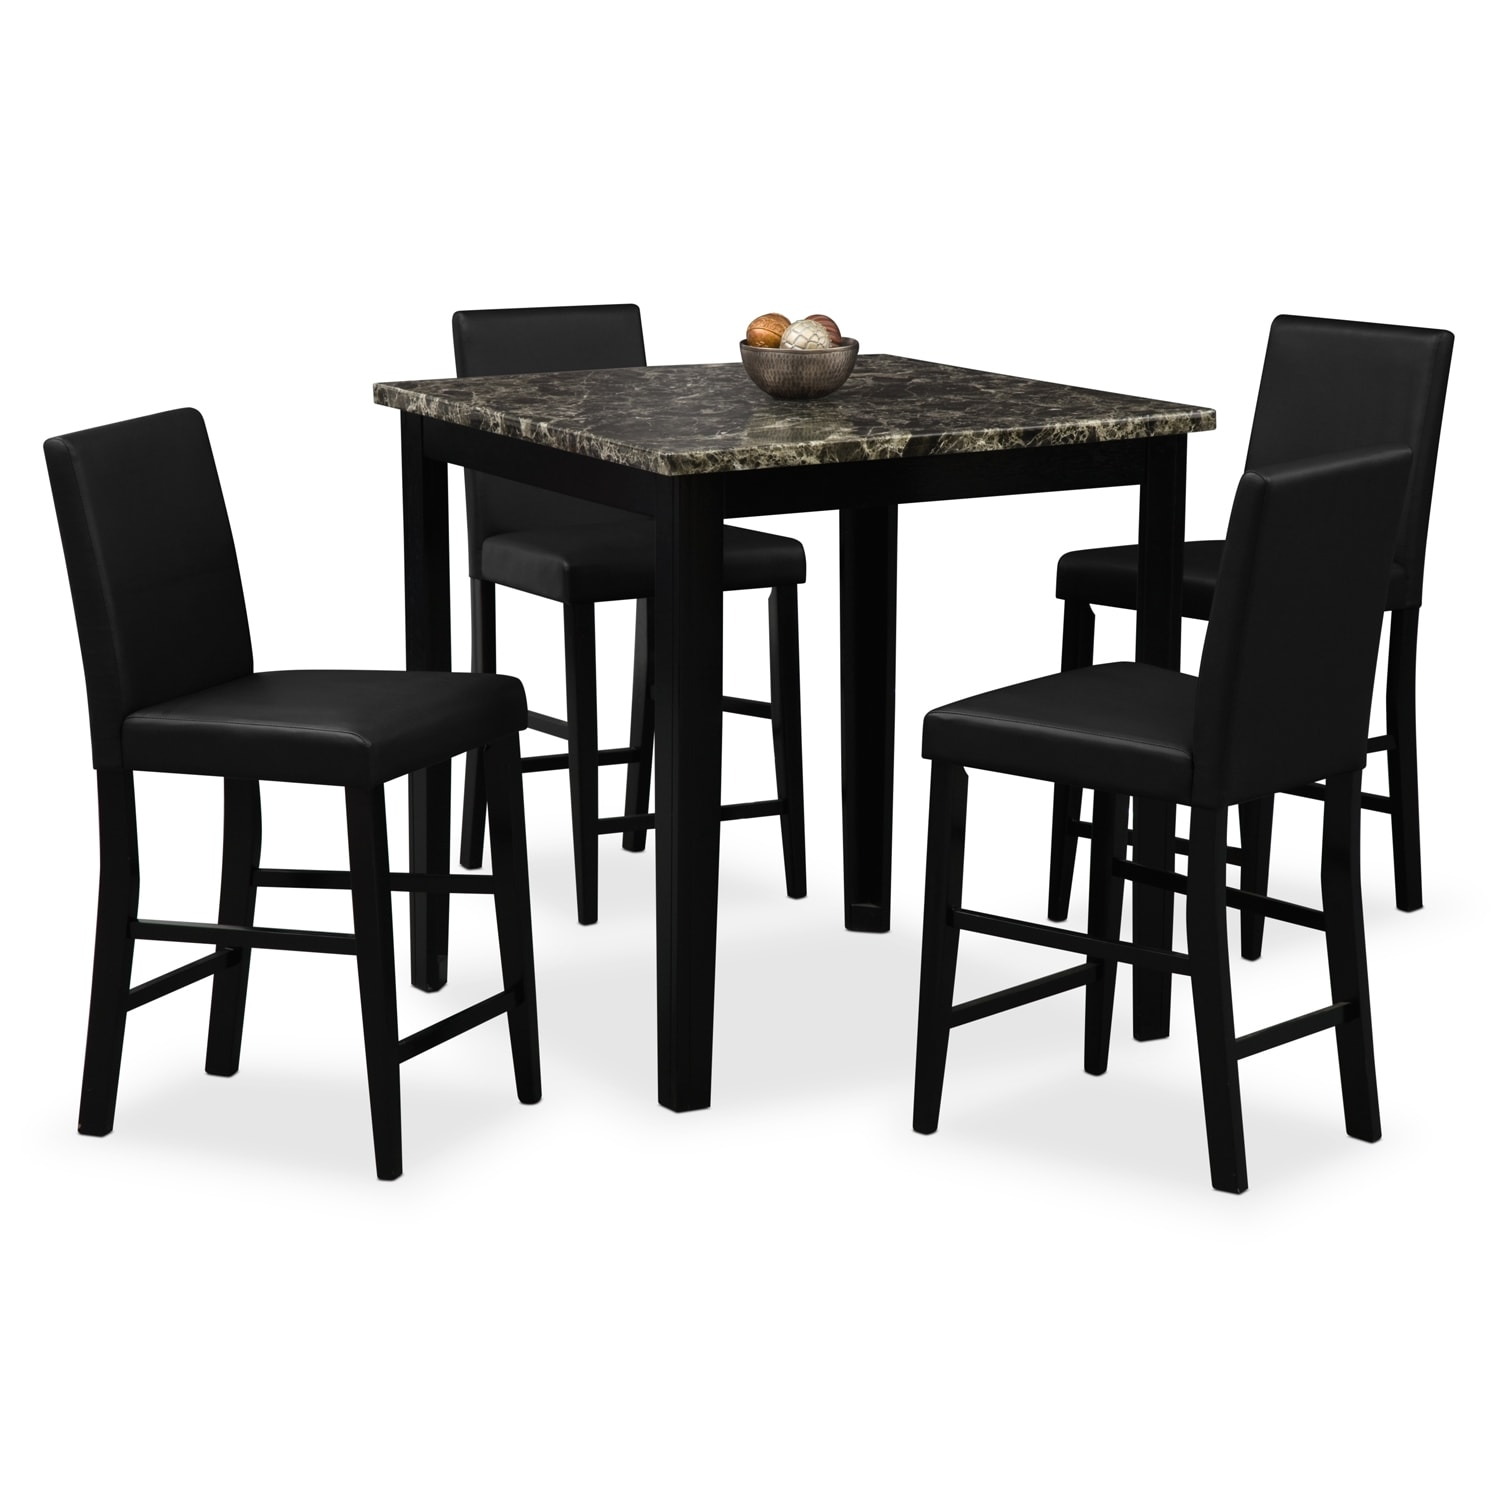 Shadow counter height table and 4 chairs black value for Dining room sets for 4